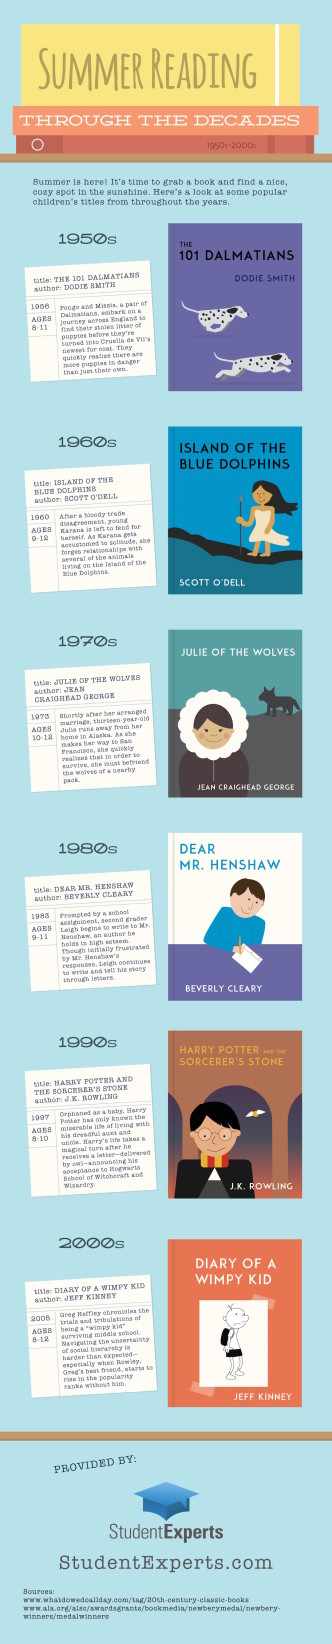 Summer reading through the decades #infographic